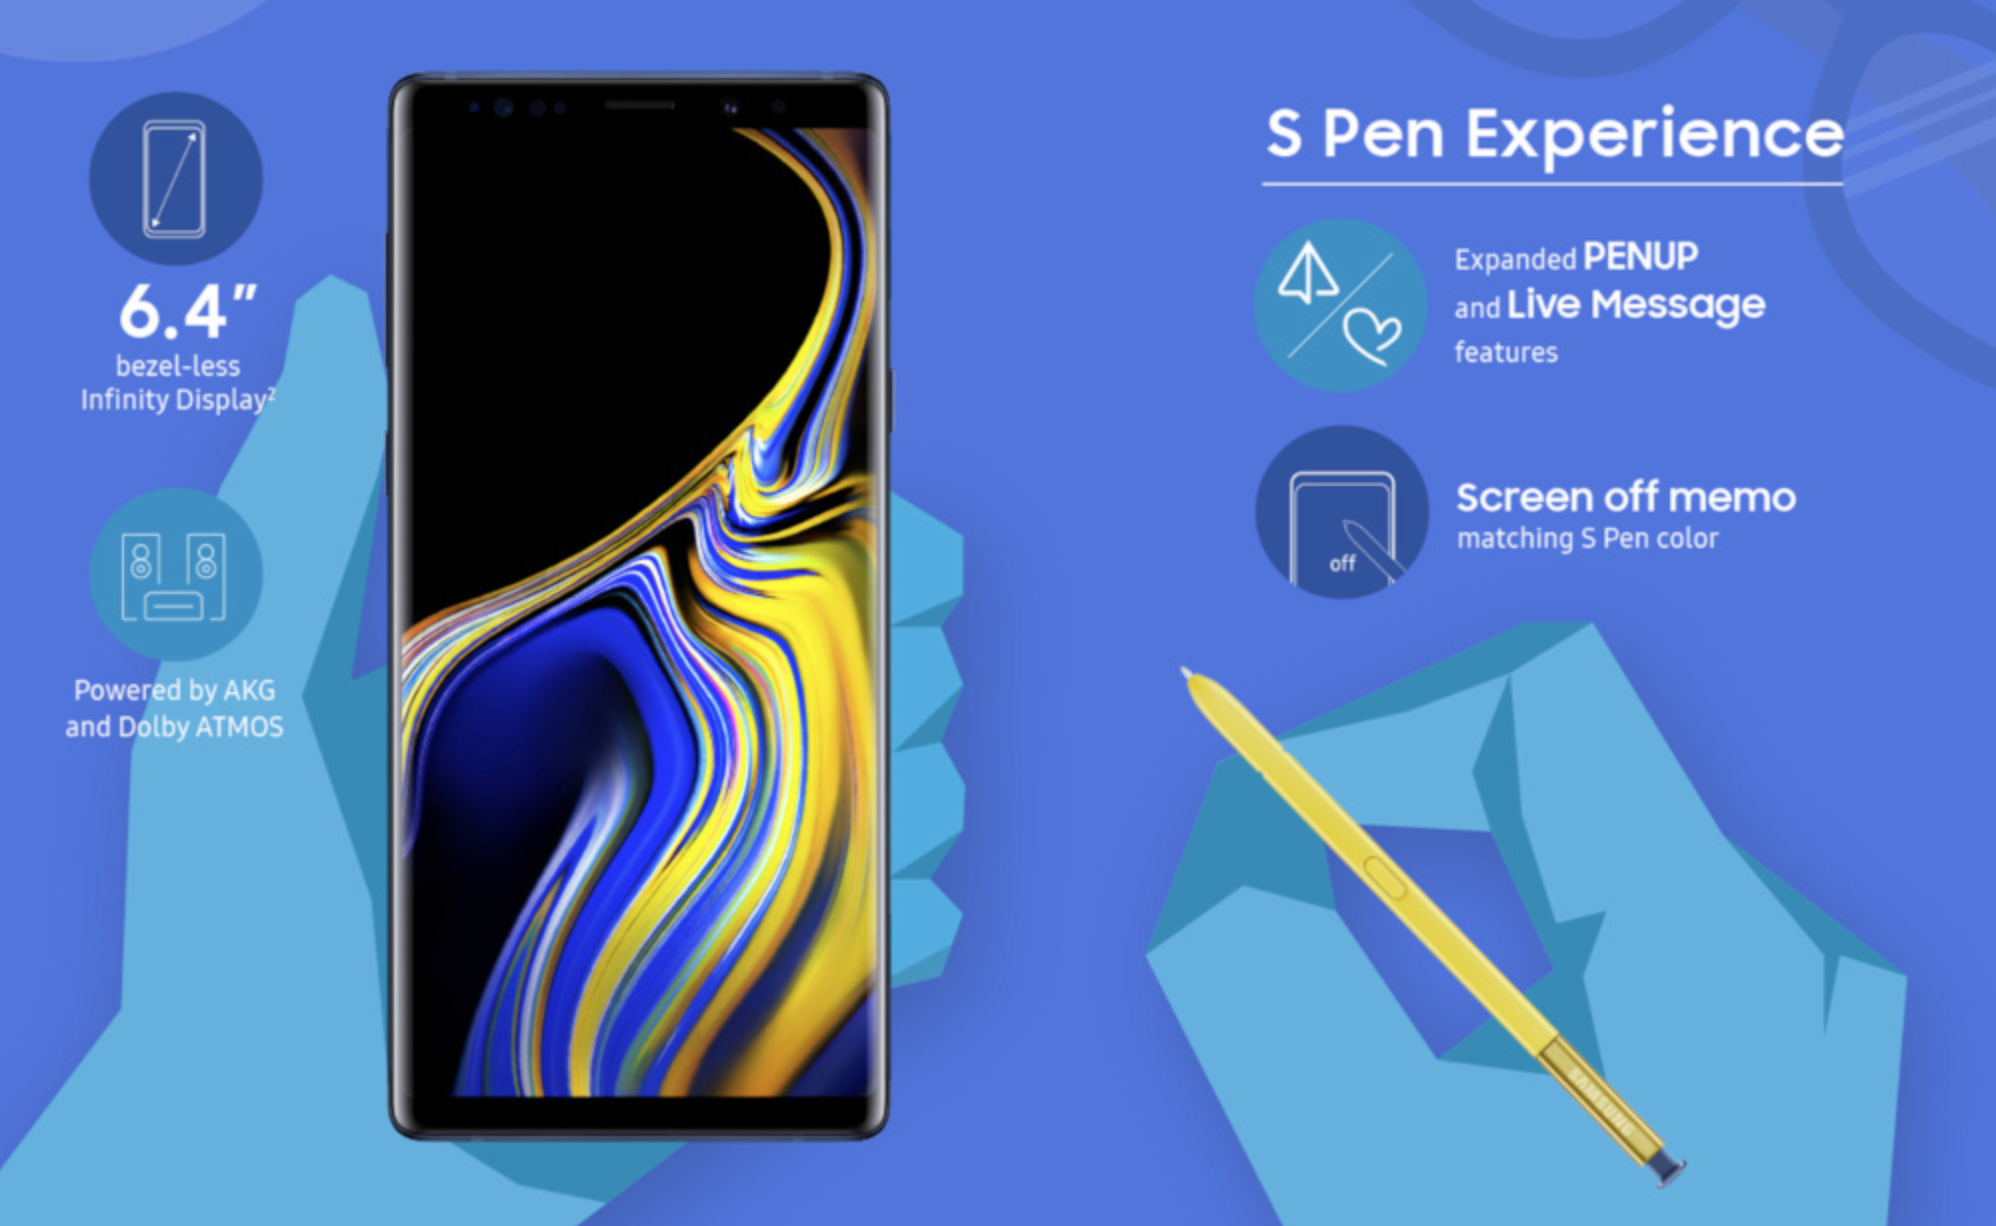 Screen Shot 2018 08 10 at 11.37.37 AM - Samsung unveils the Galaxy Note 9 with a completely redesigned S-pen, massive battery and superb performance